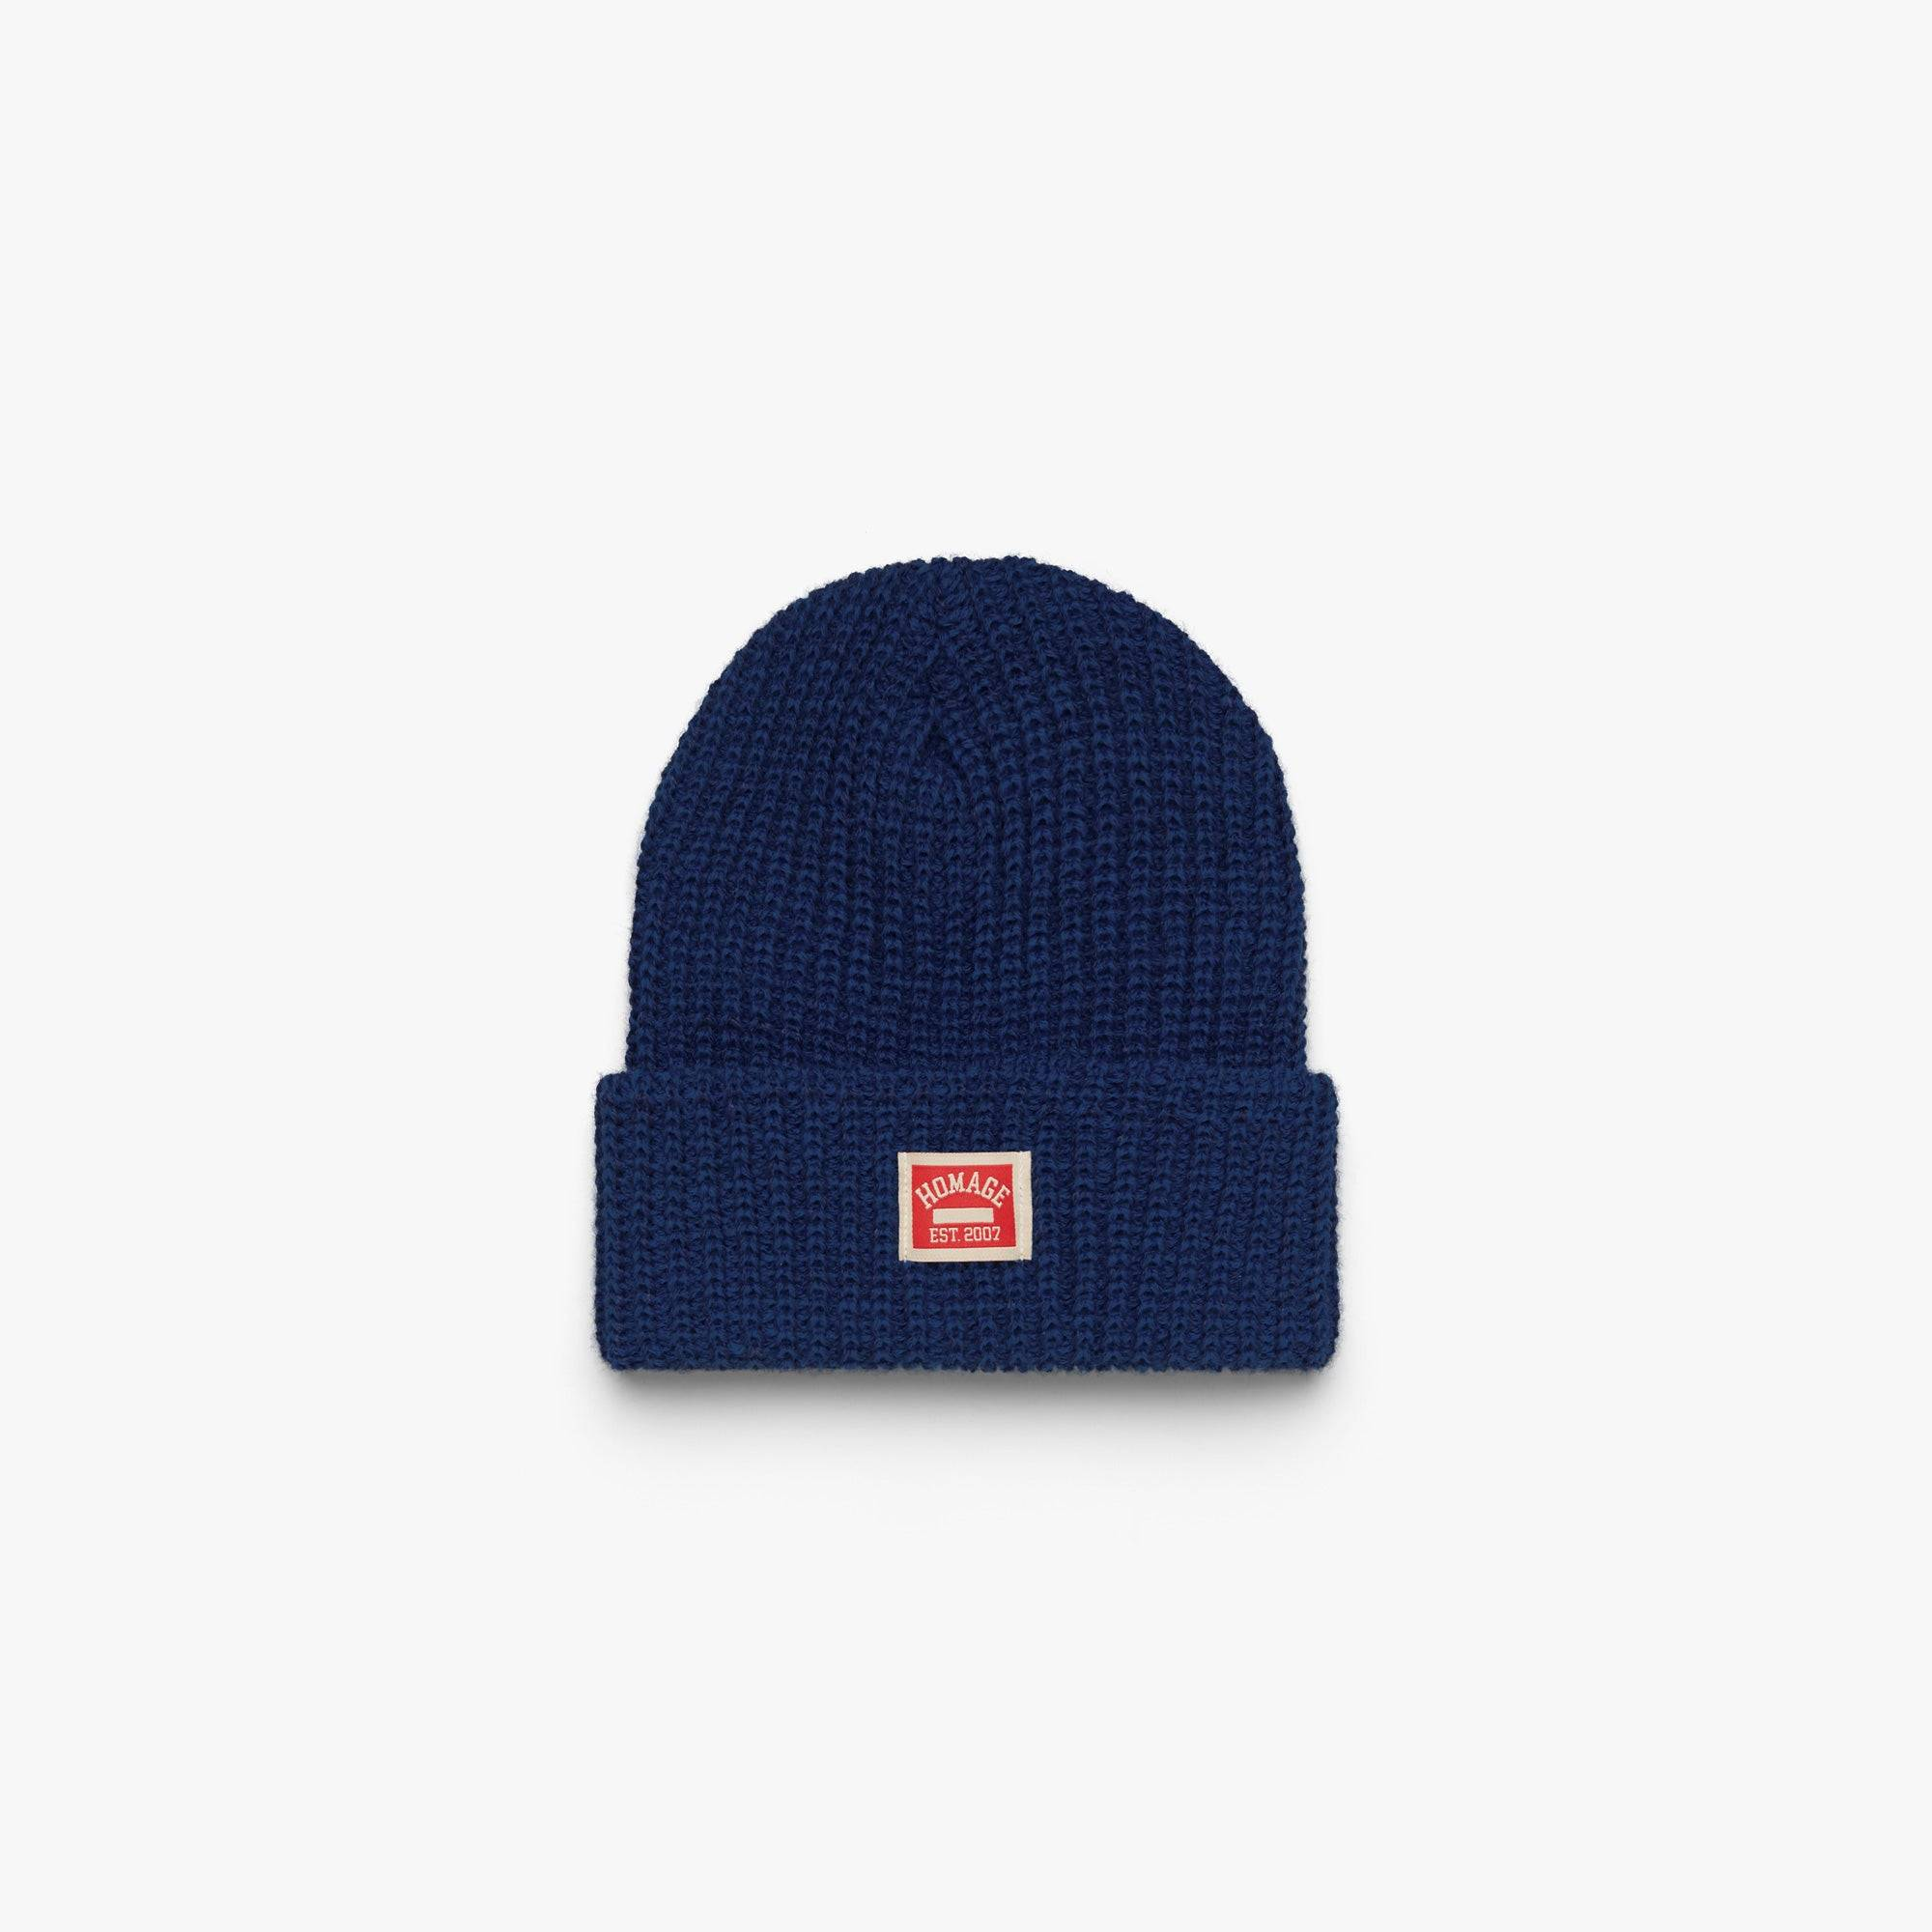 HOMAGE Go-To Beanie in  Blue (Size: One Size)